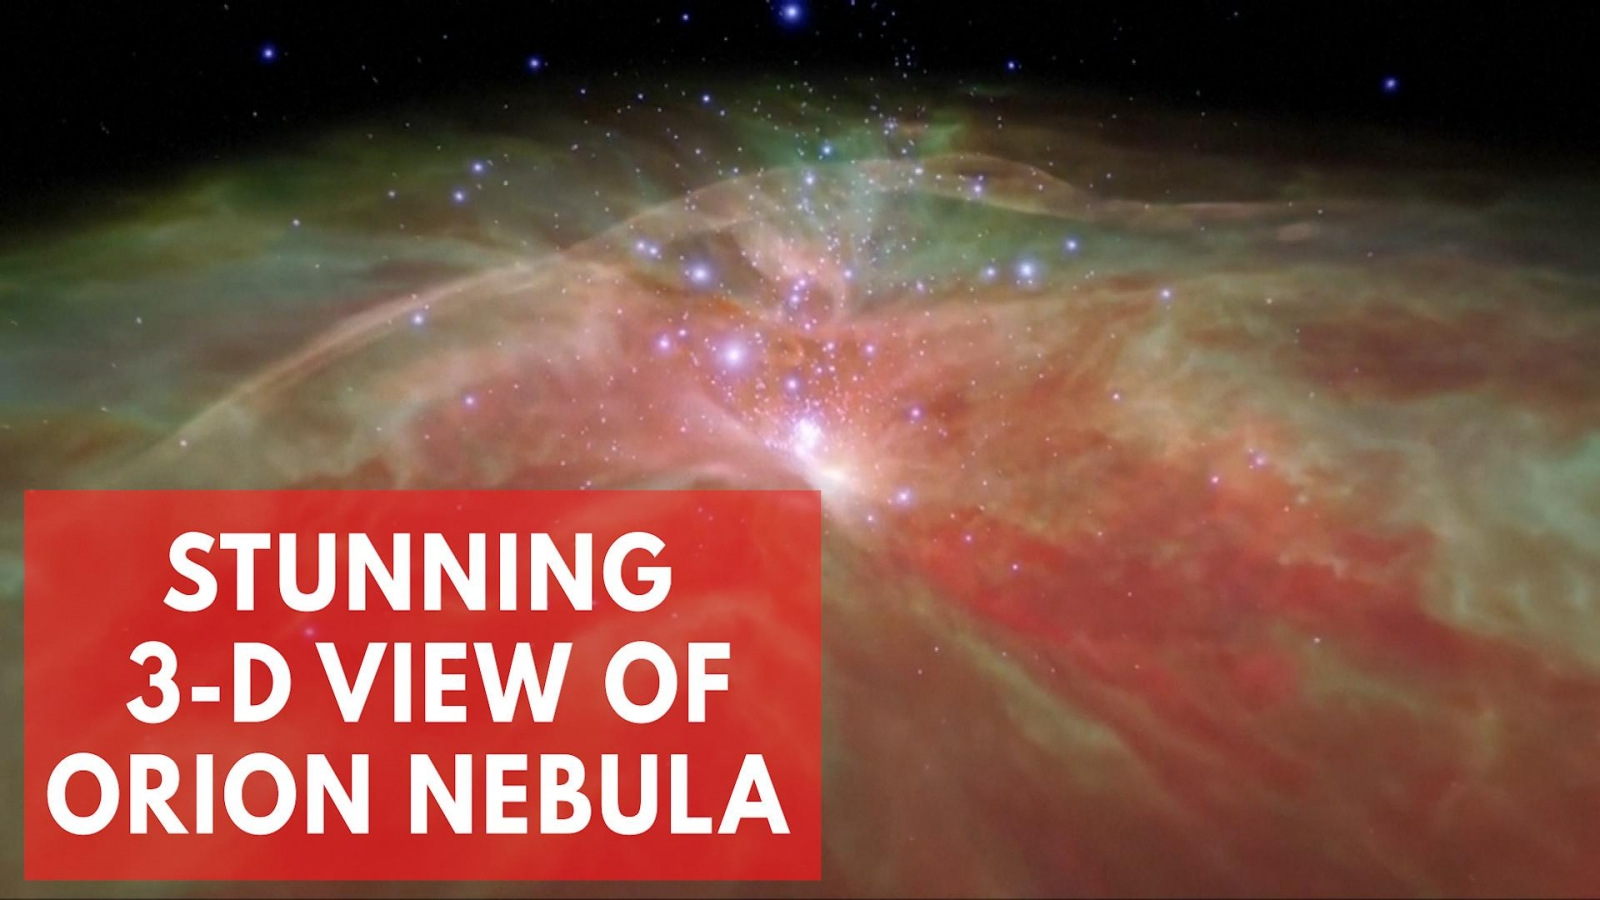 nasas-3-d-fly-through-journey-of-the-orion-nebula-is-stunning